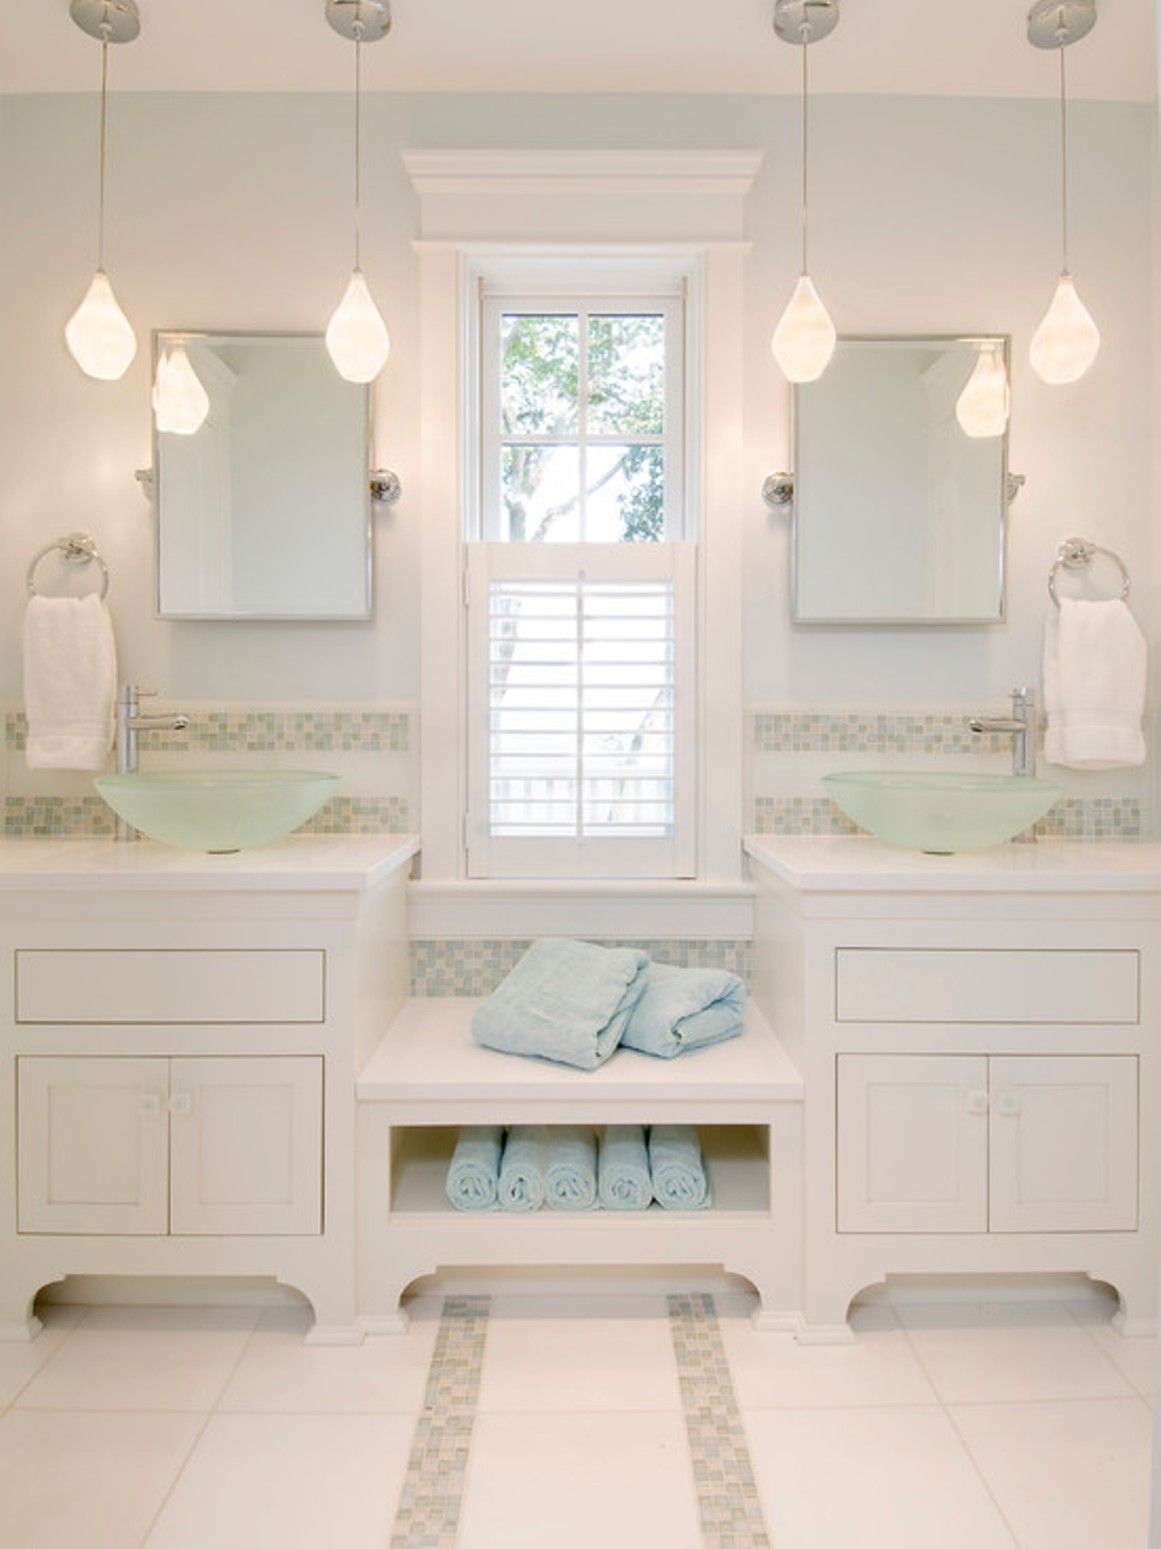 Bathroom Vanity Lights Brisbane best pendant lighting bathroom vanity for awesome nuance : white